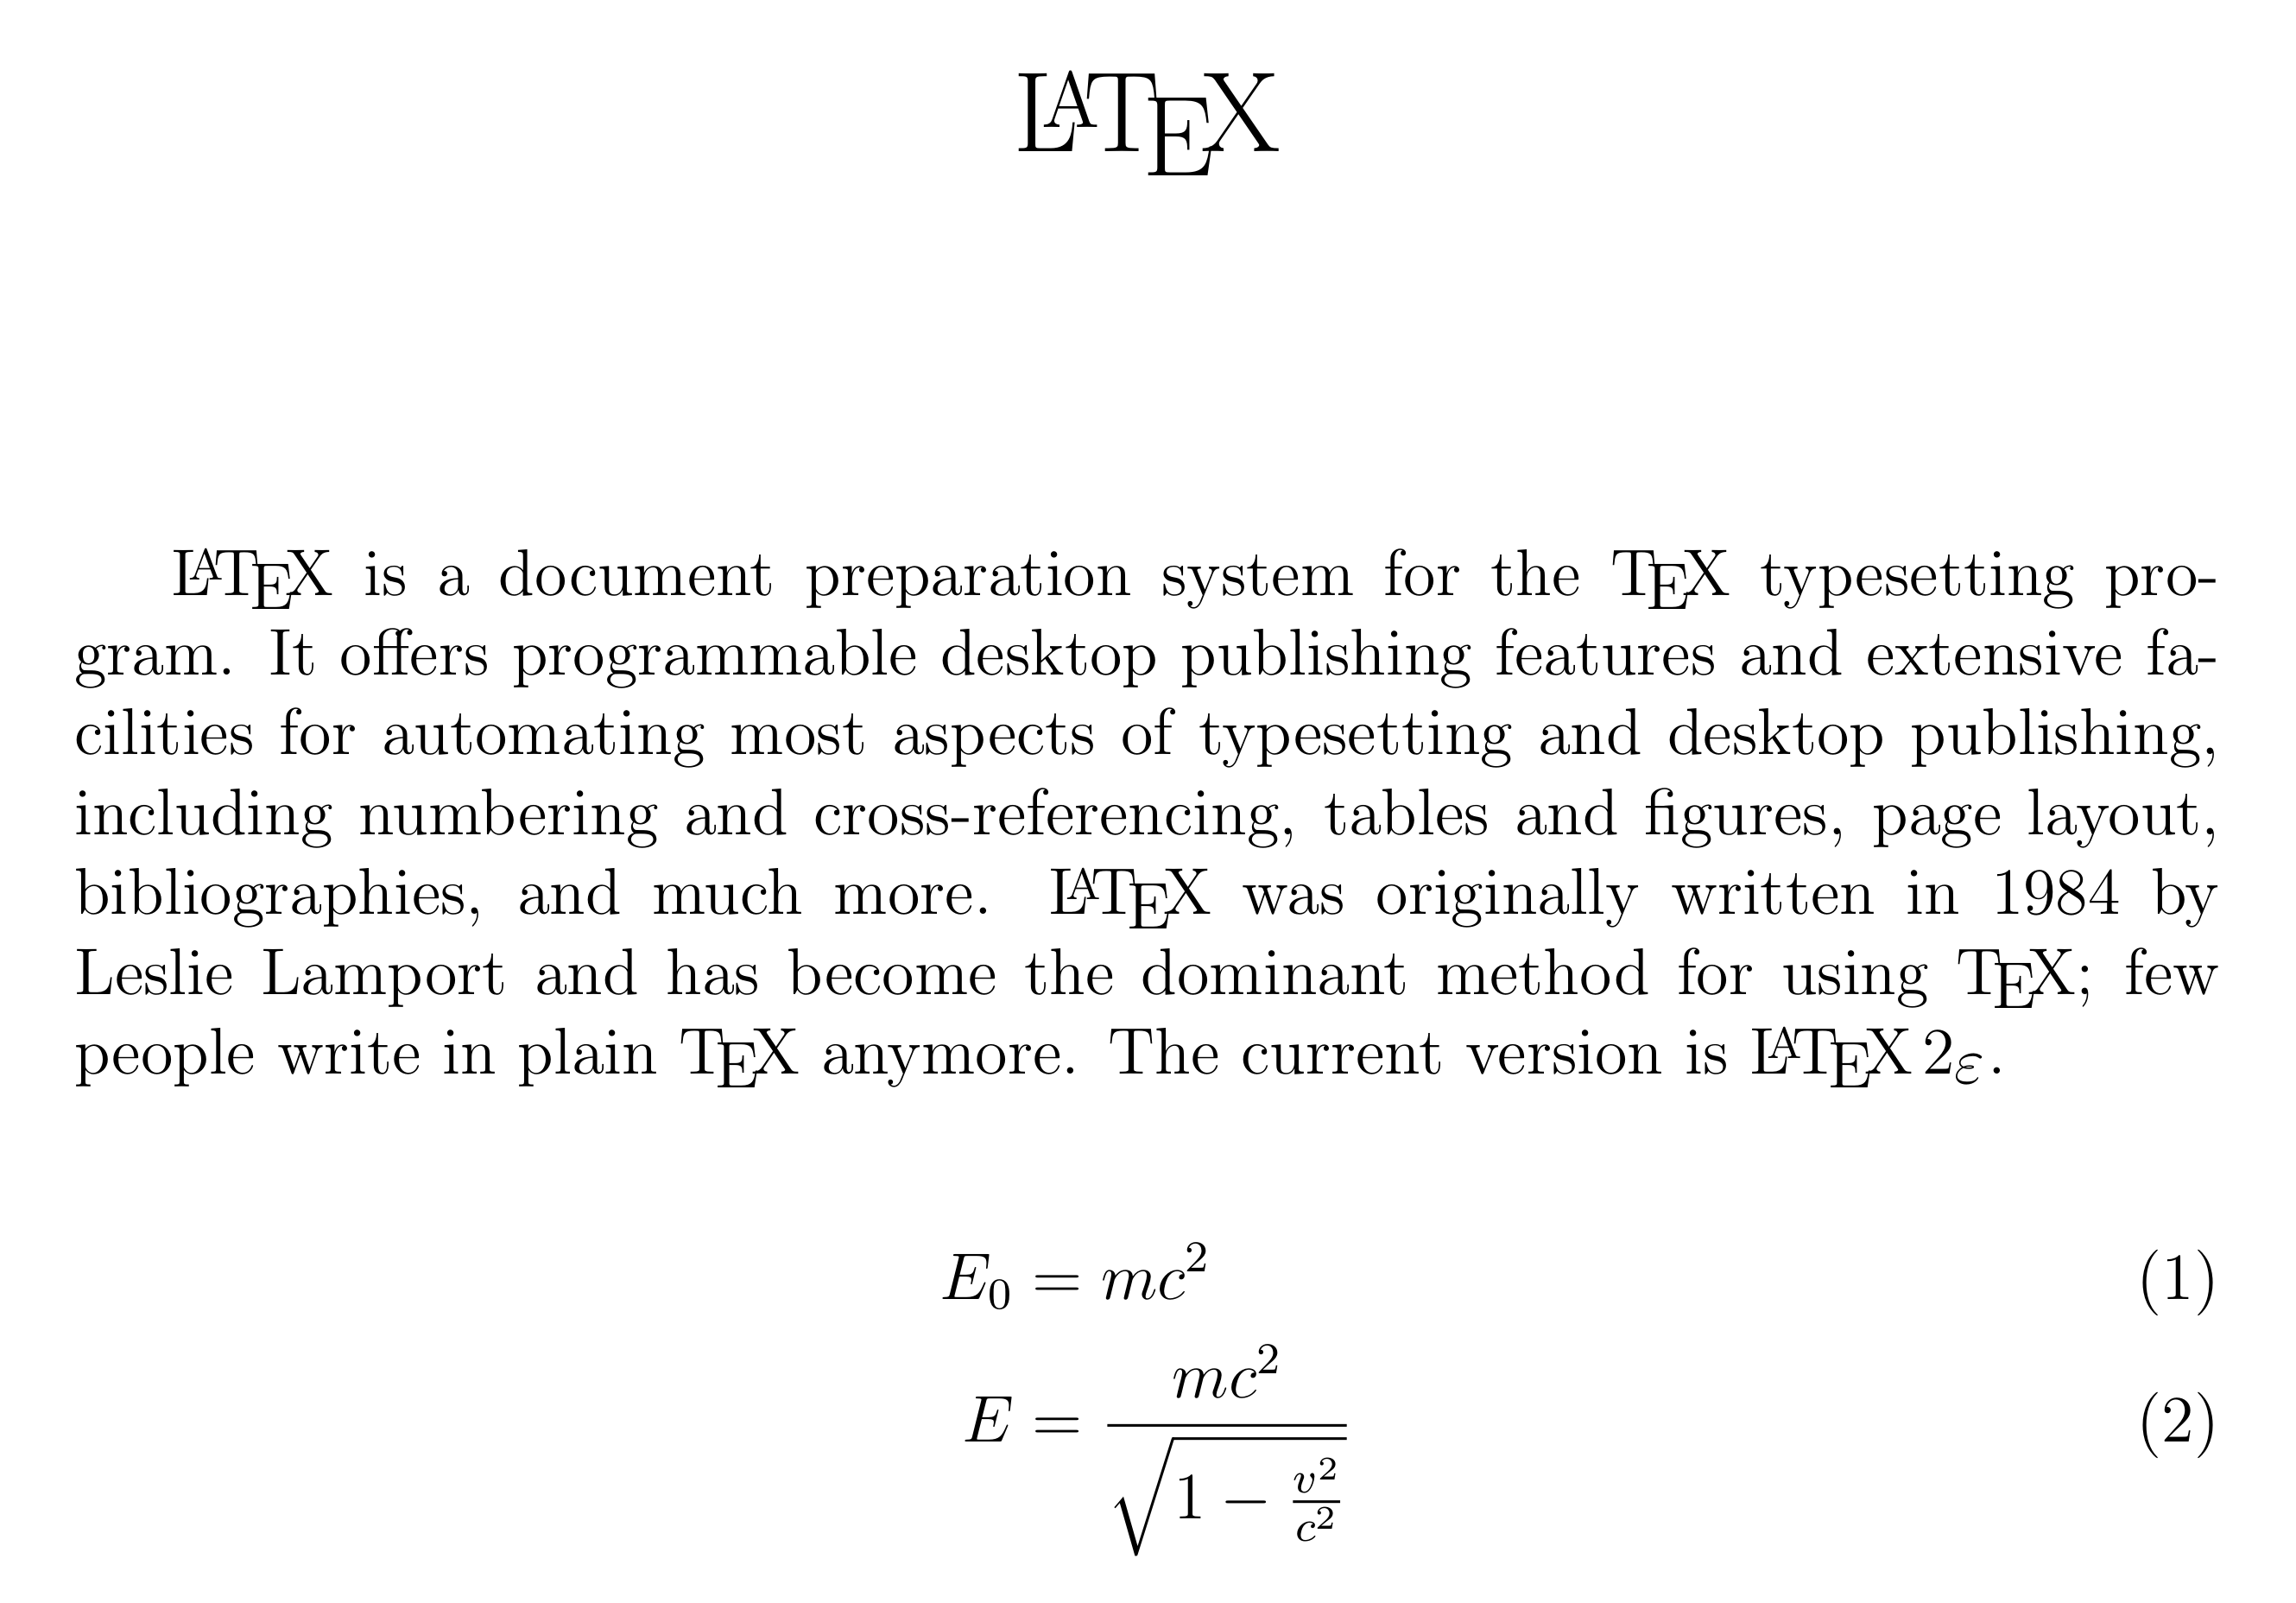 http://upload.wikimedia.org/wikipedia/commons/9/9c/Latex_example.png